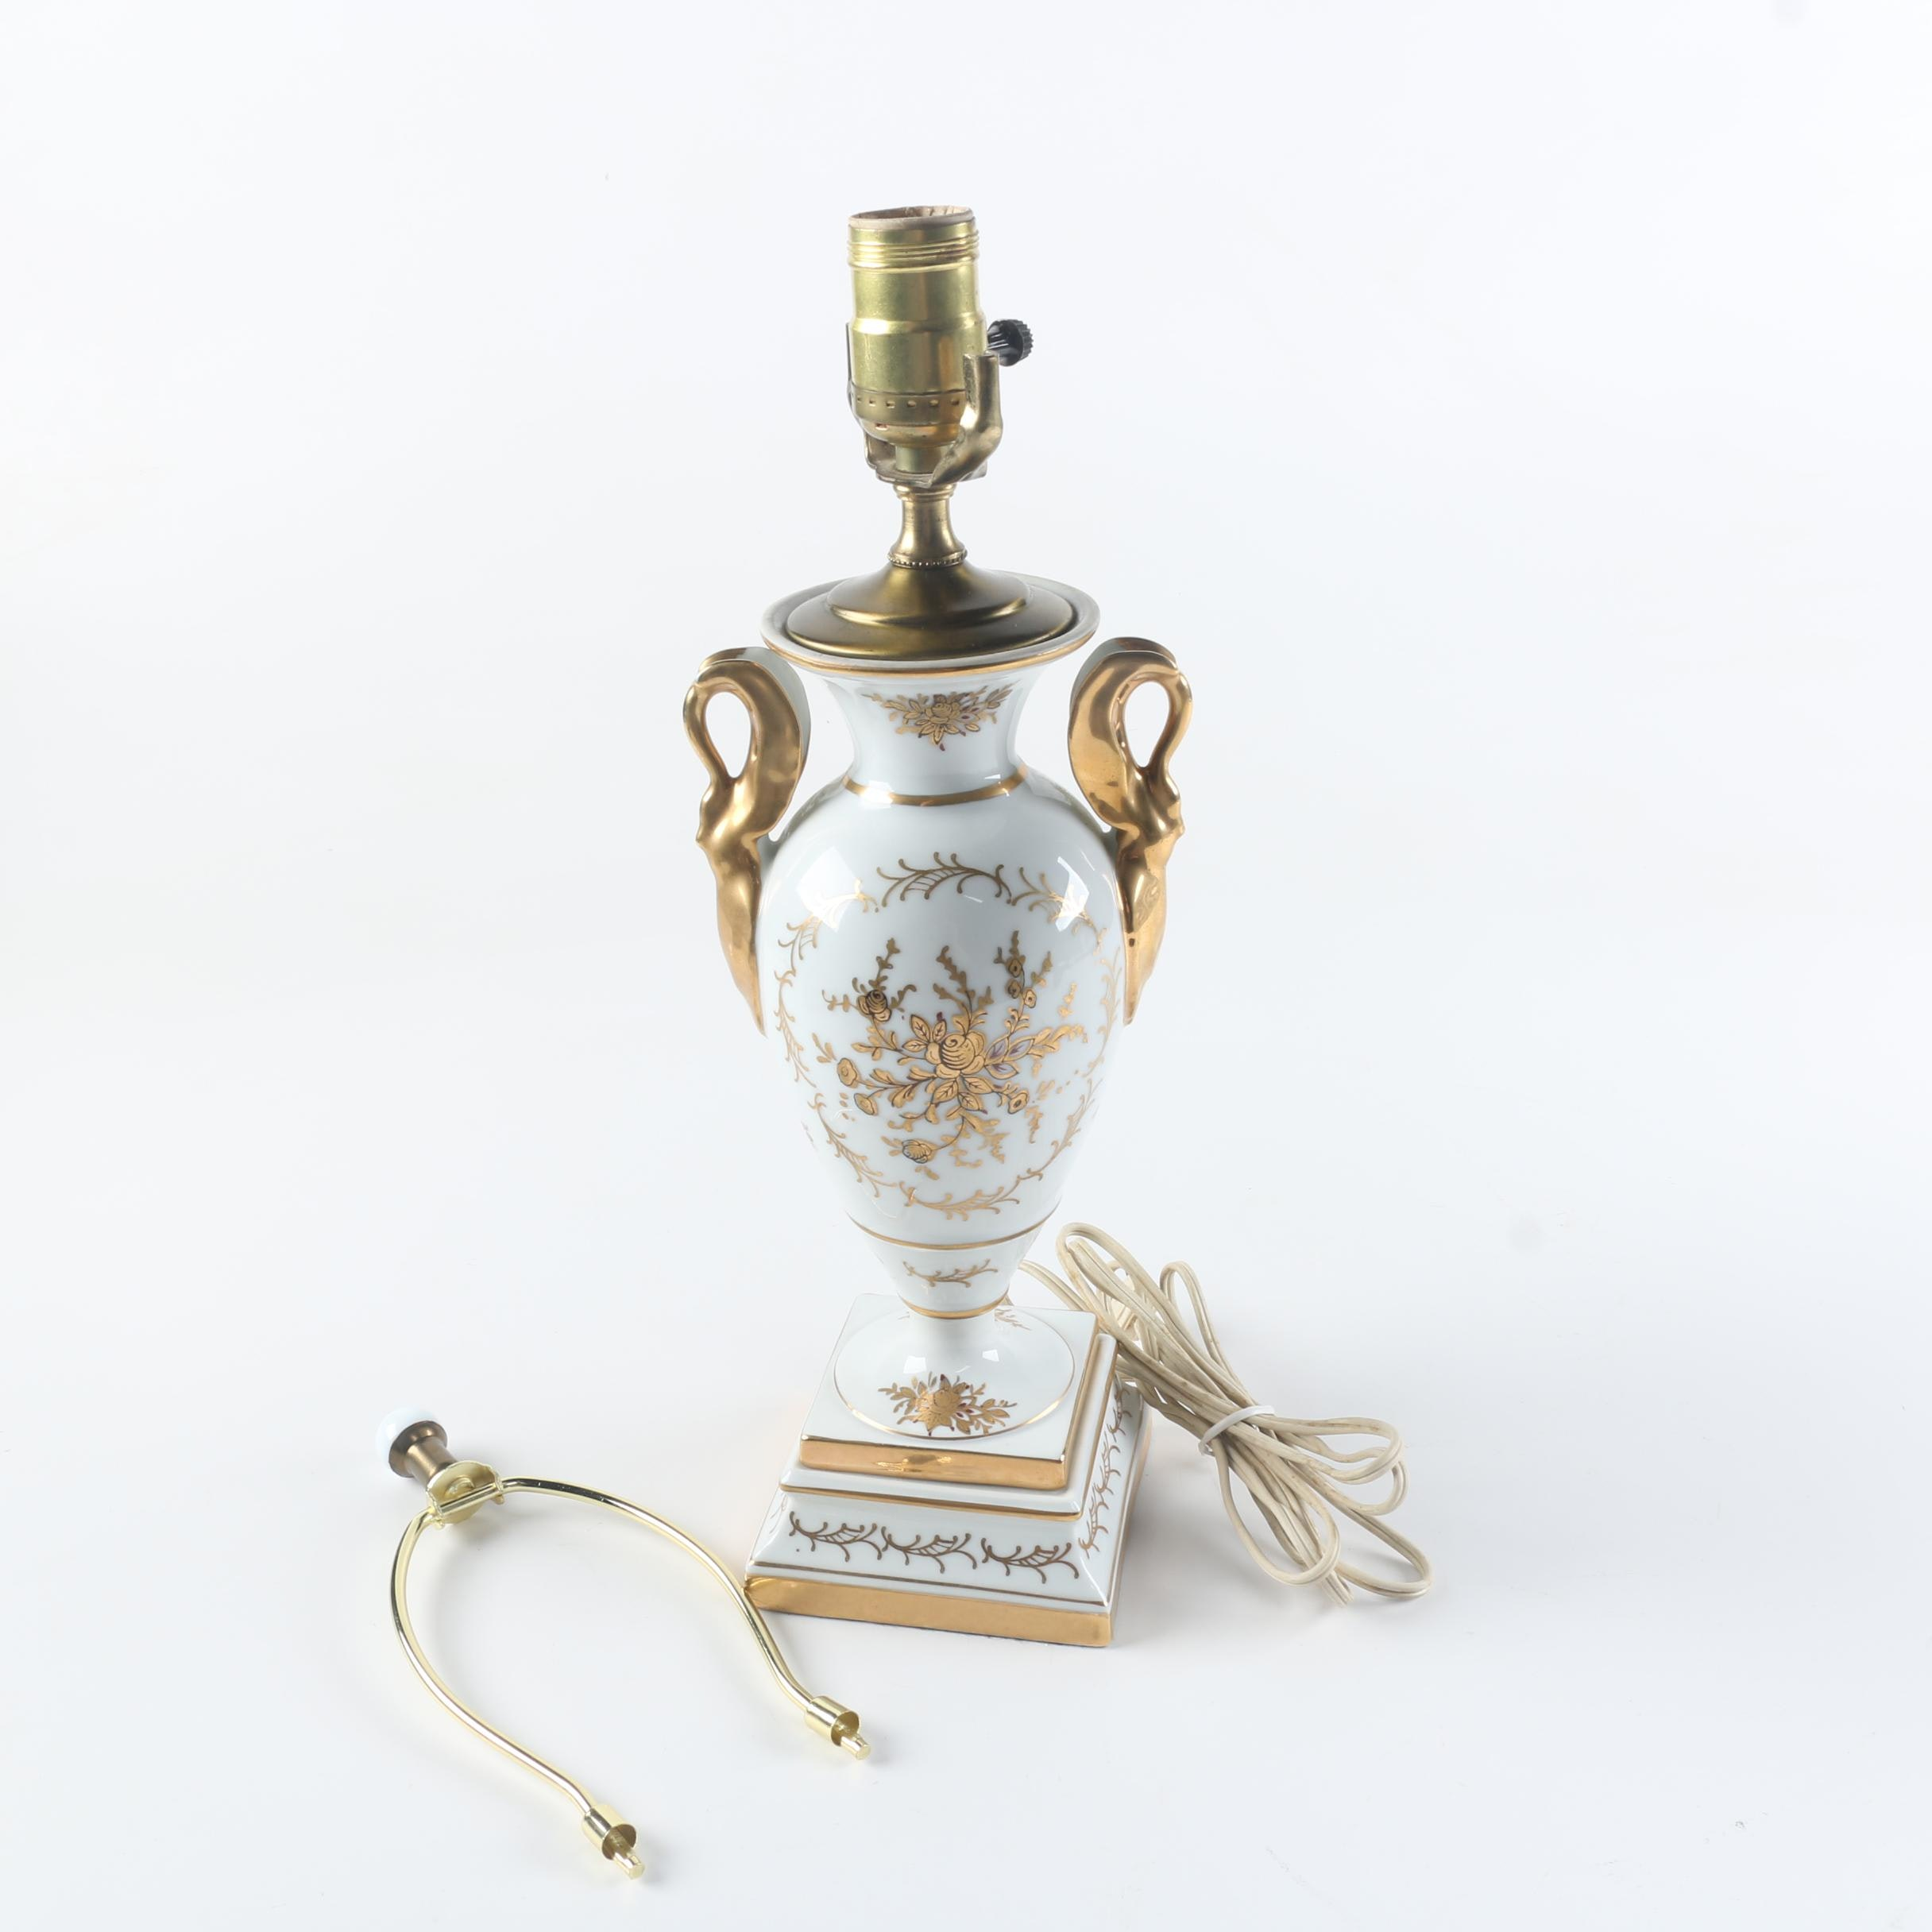 Porcelain Urn Table Lamp with Gold Tone Floral Decoration